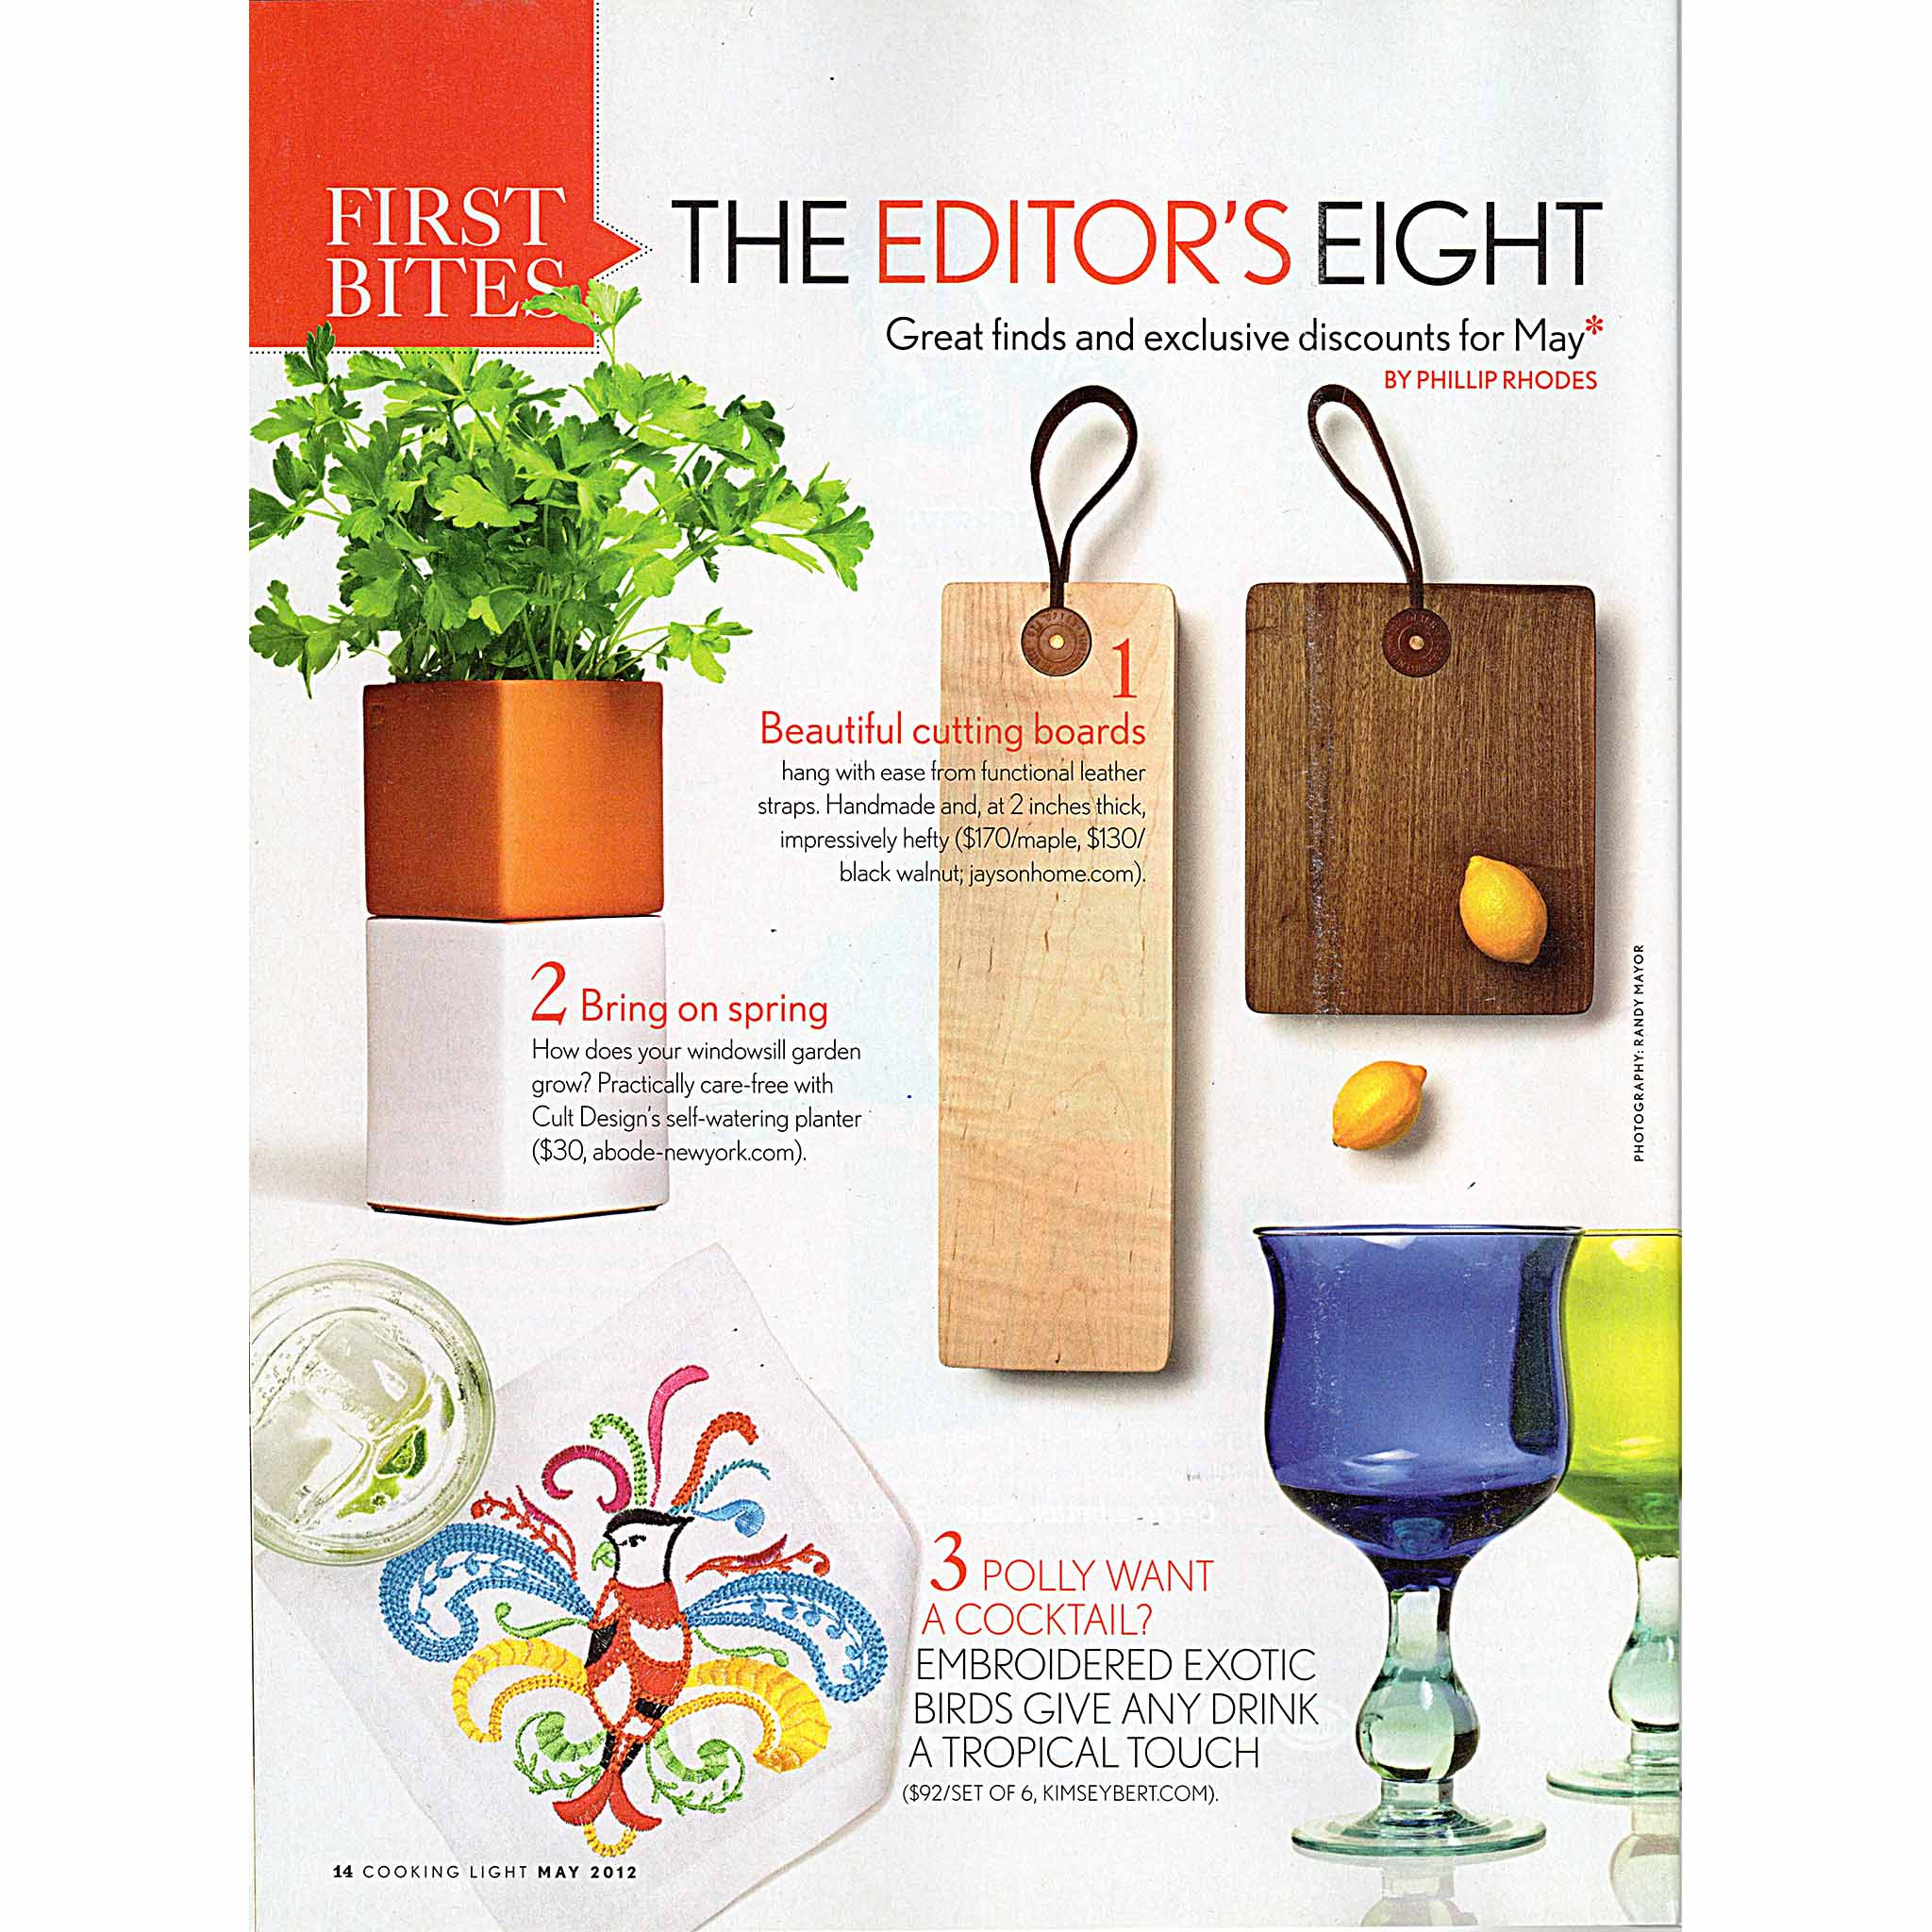 Cooking Light, First Bites – Cooking 101: The Editor's Eight by Phillips Rhodes. Photo: Randy Mayor. Cult Design's Evergreen Self-Watering Planter, May 2012.